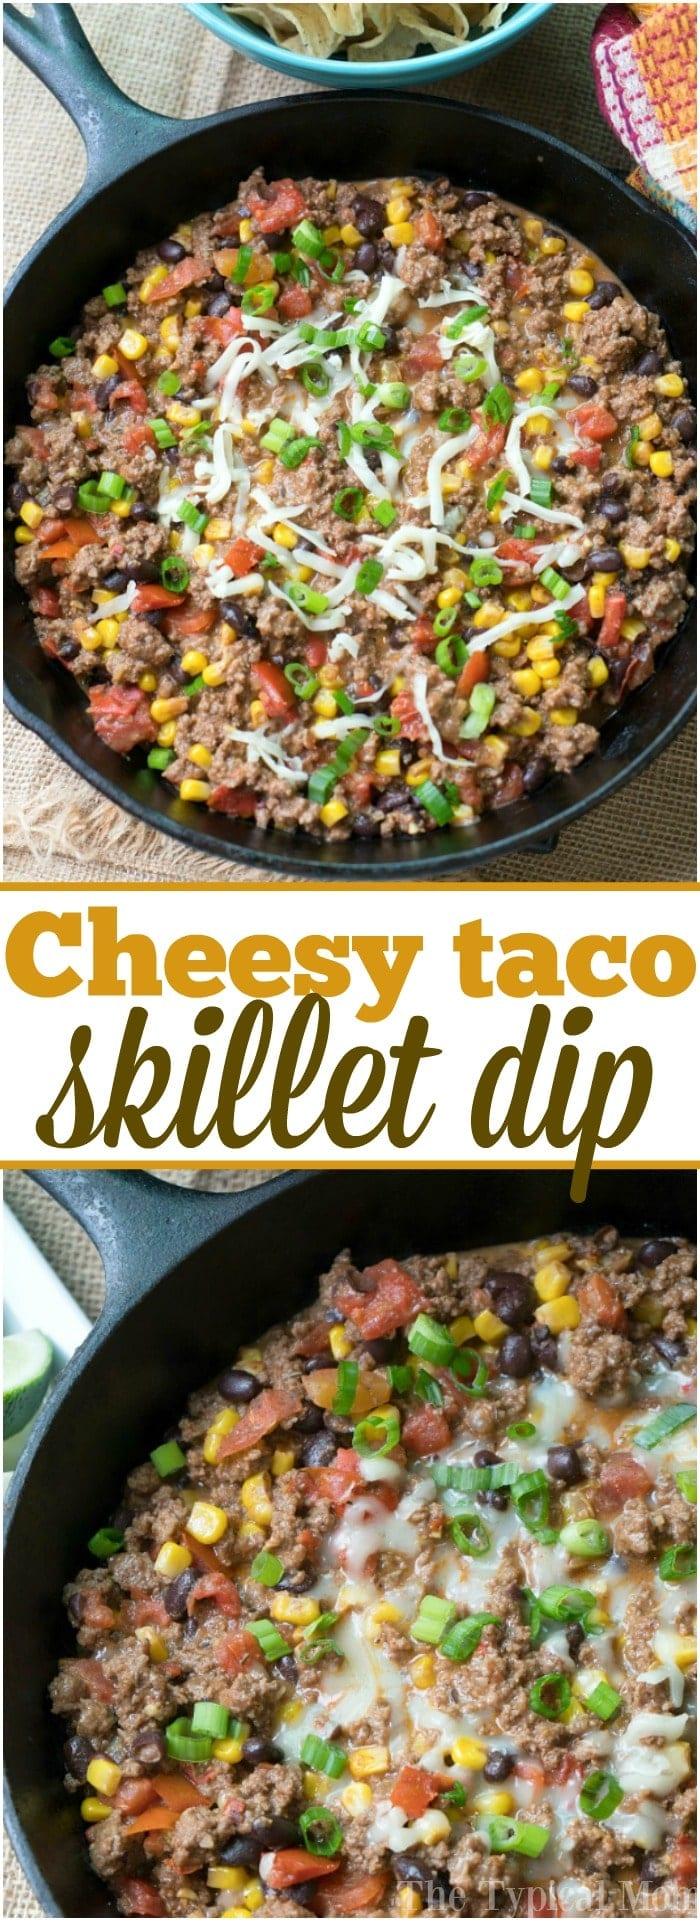 This cheesy taco dip with ground beef is a delicious appetizer or meal! Perfectly seasoned and made in your skillet it's a hearty snack or dinner idea! #taco #skillet #dip #easy #recipe #appetizer #southwestern #dinner